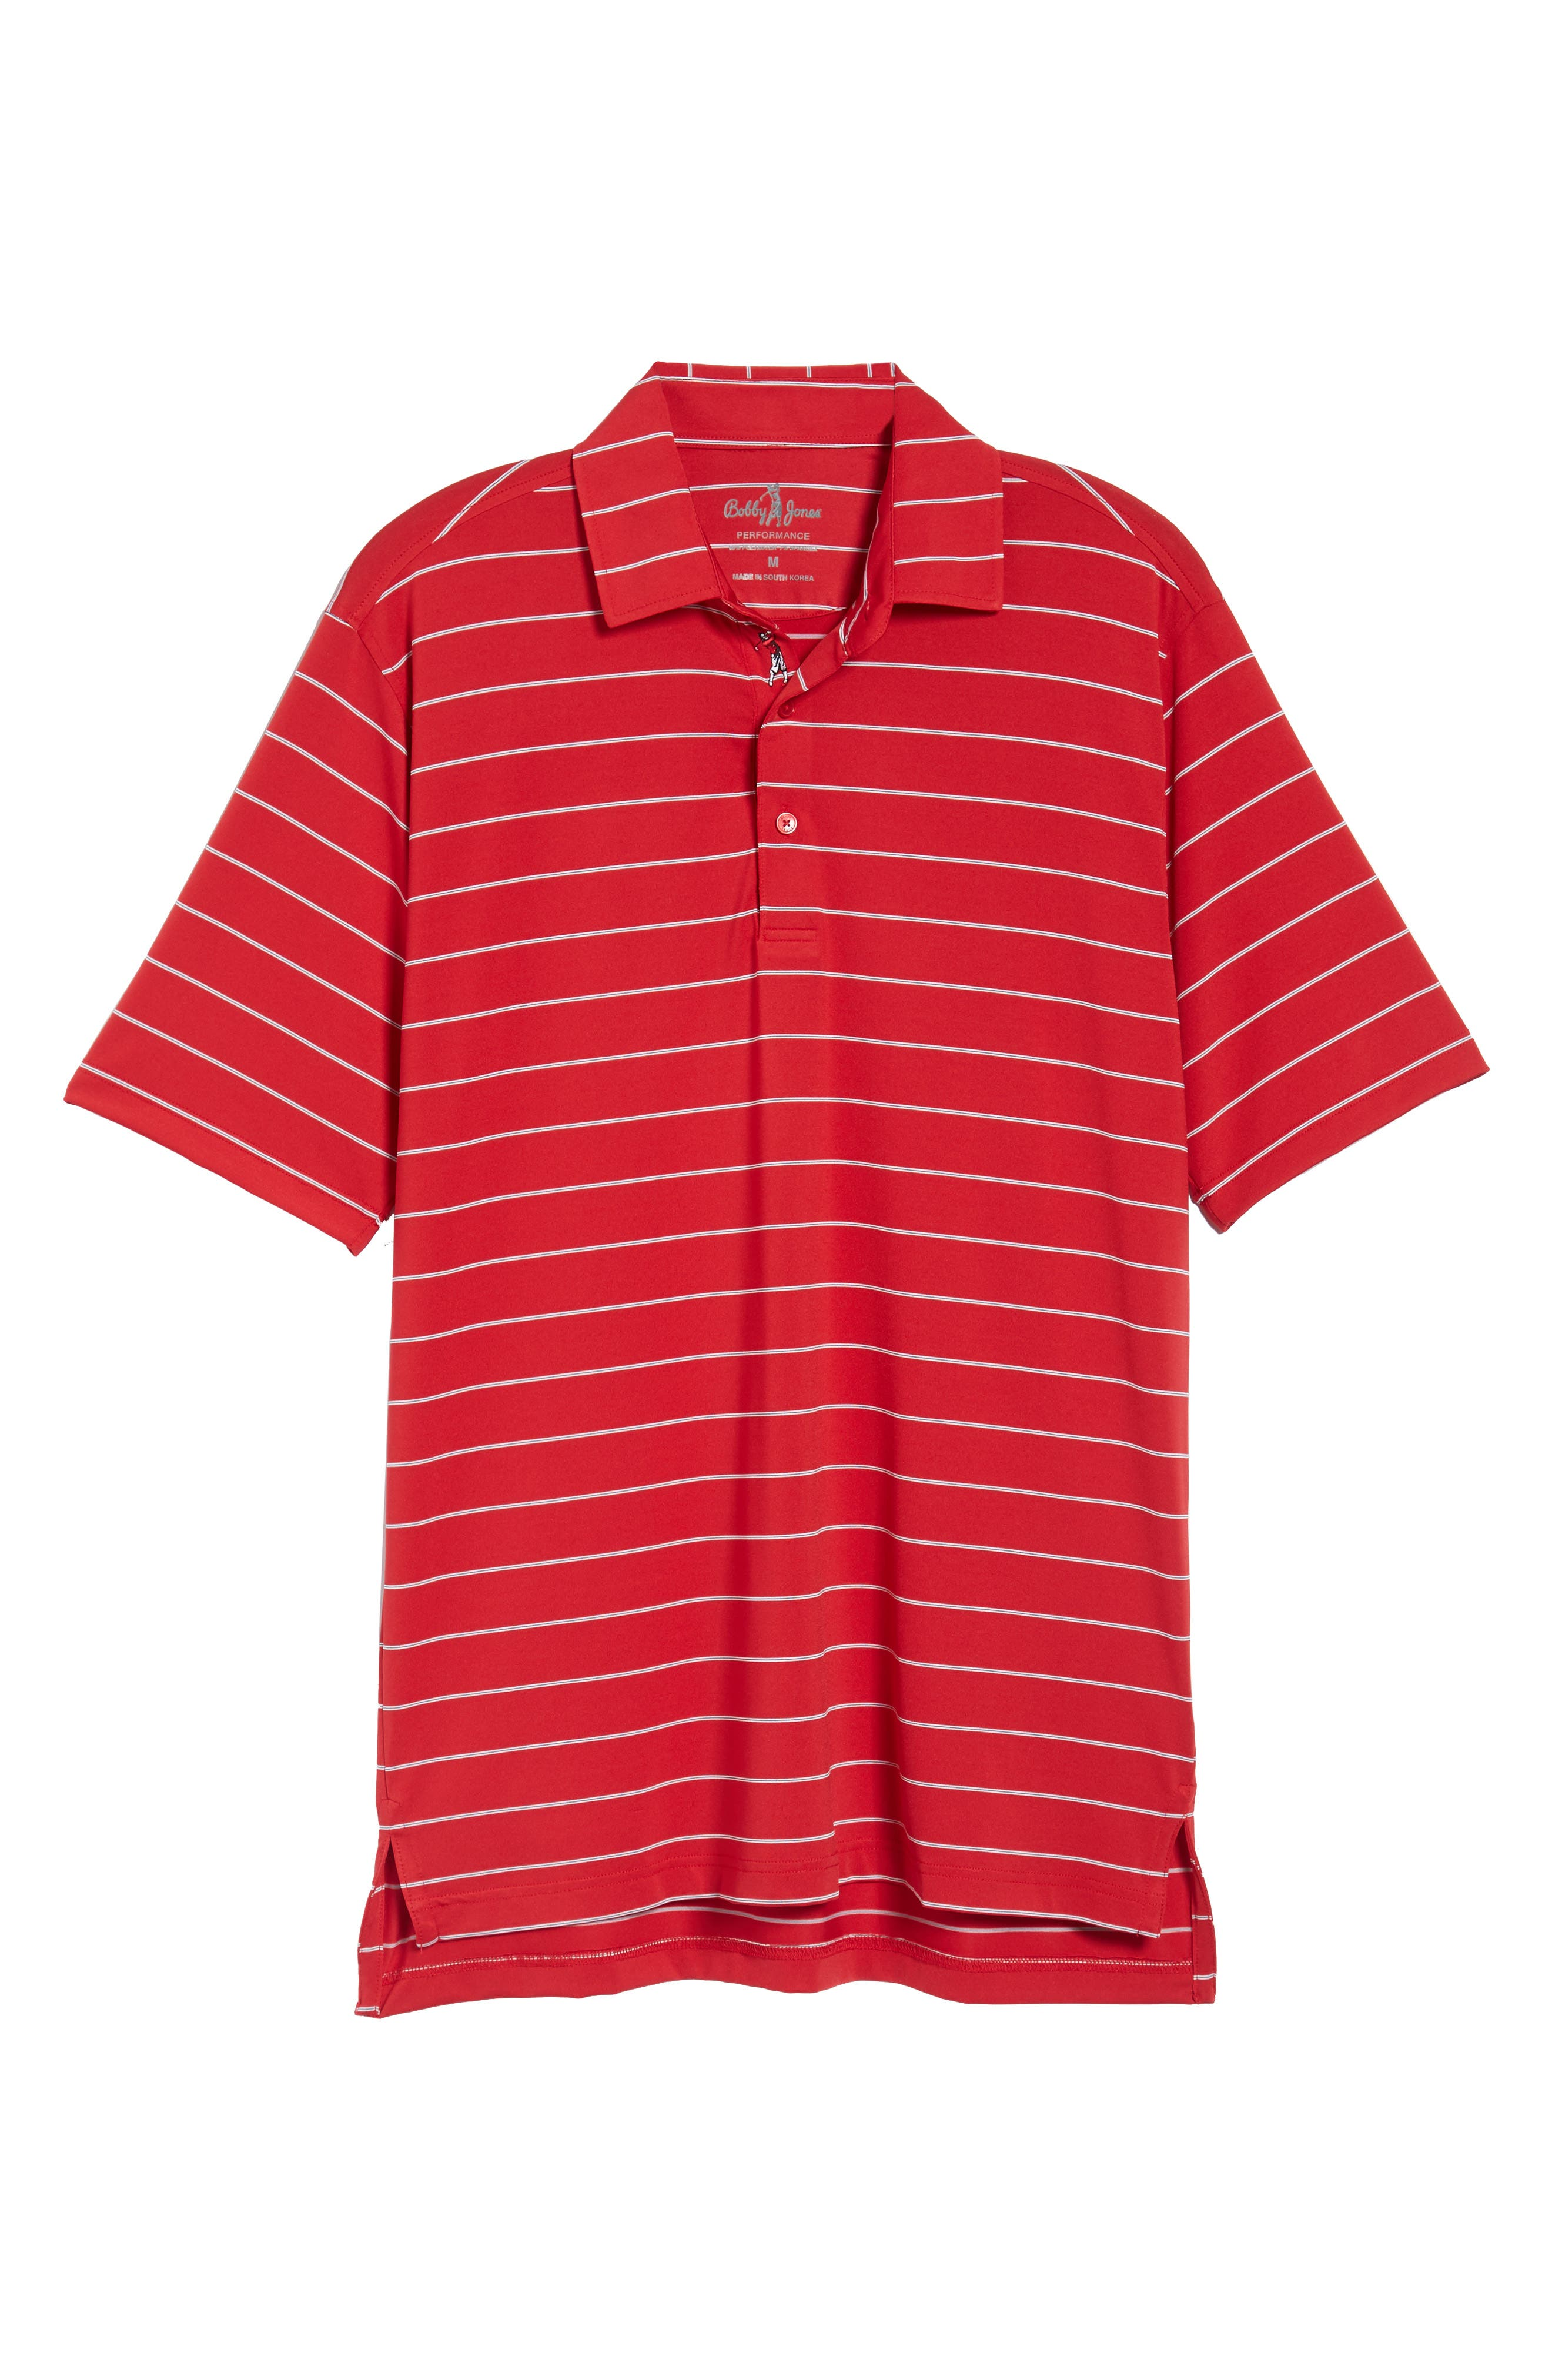 XH2O Momentum Stripe Jersey Polo,                             Alternate thumbnail 6, color,                             CAMBRIDGE RED